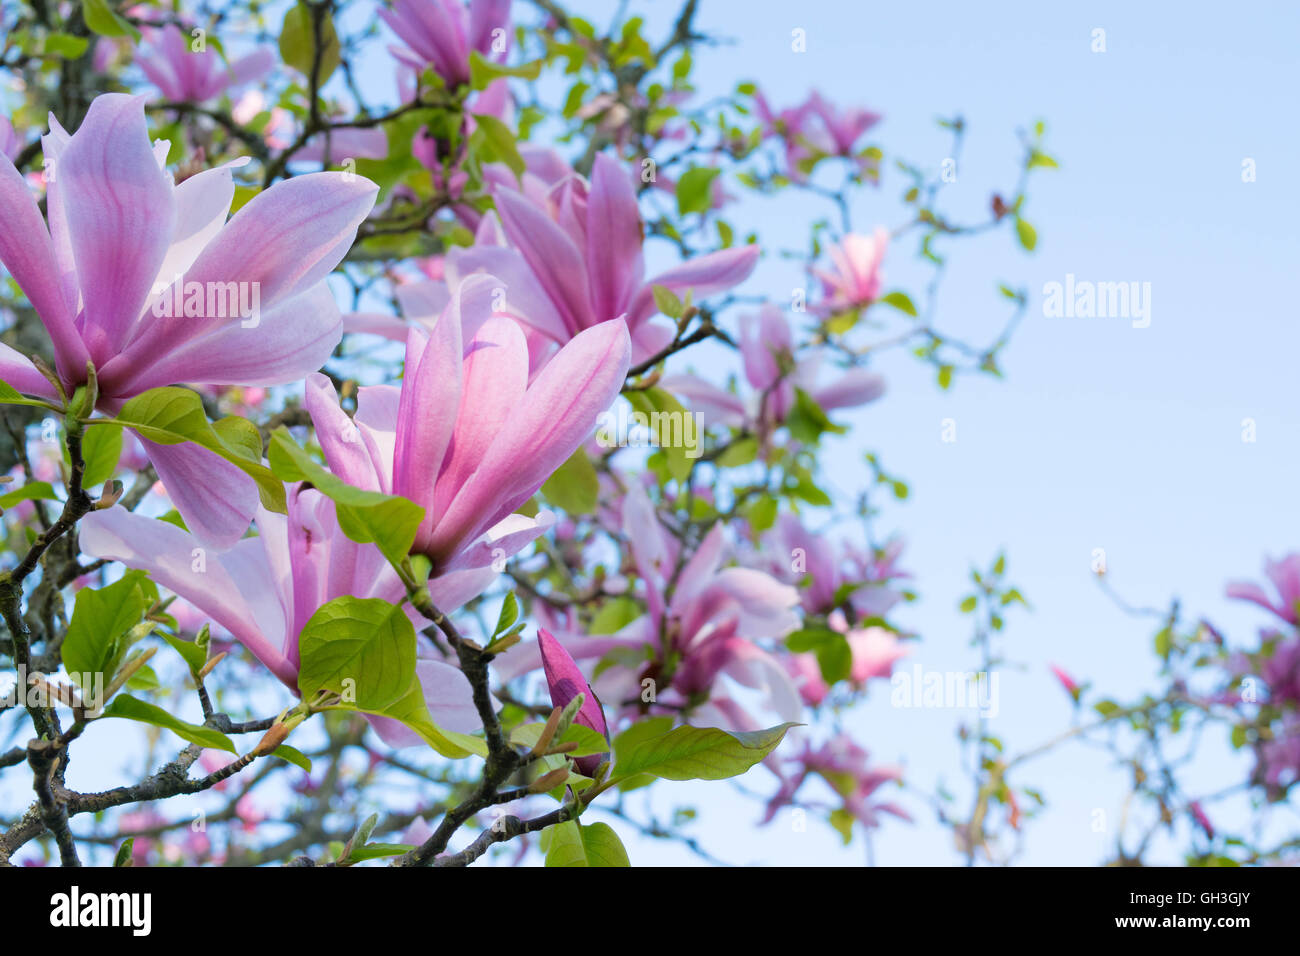 Blooming Magnolias Stock Photos & Blooming Magnolias Stock Images ...